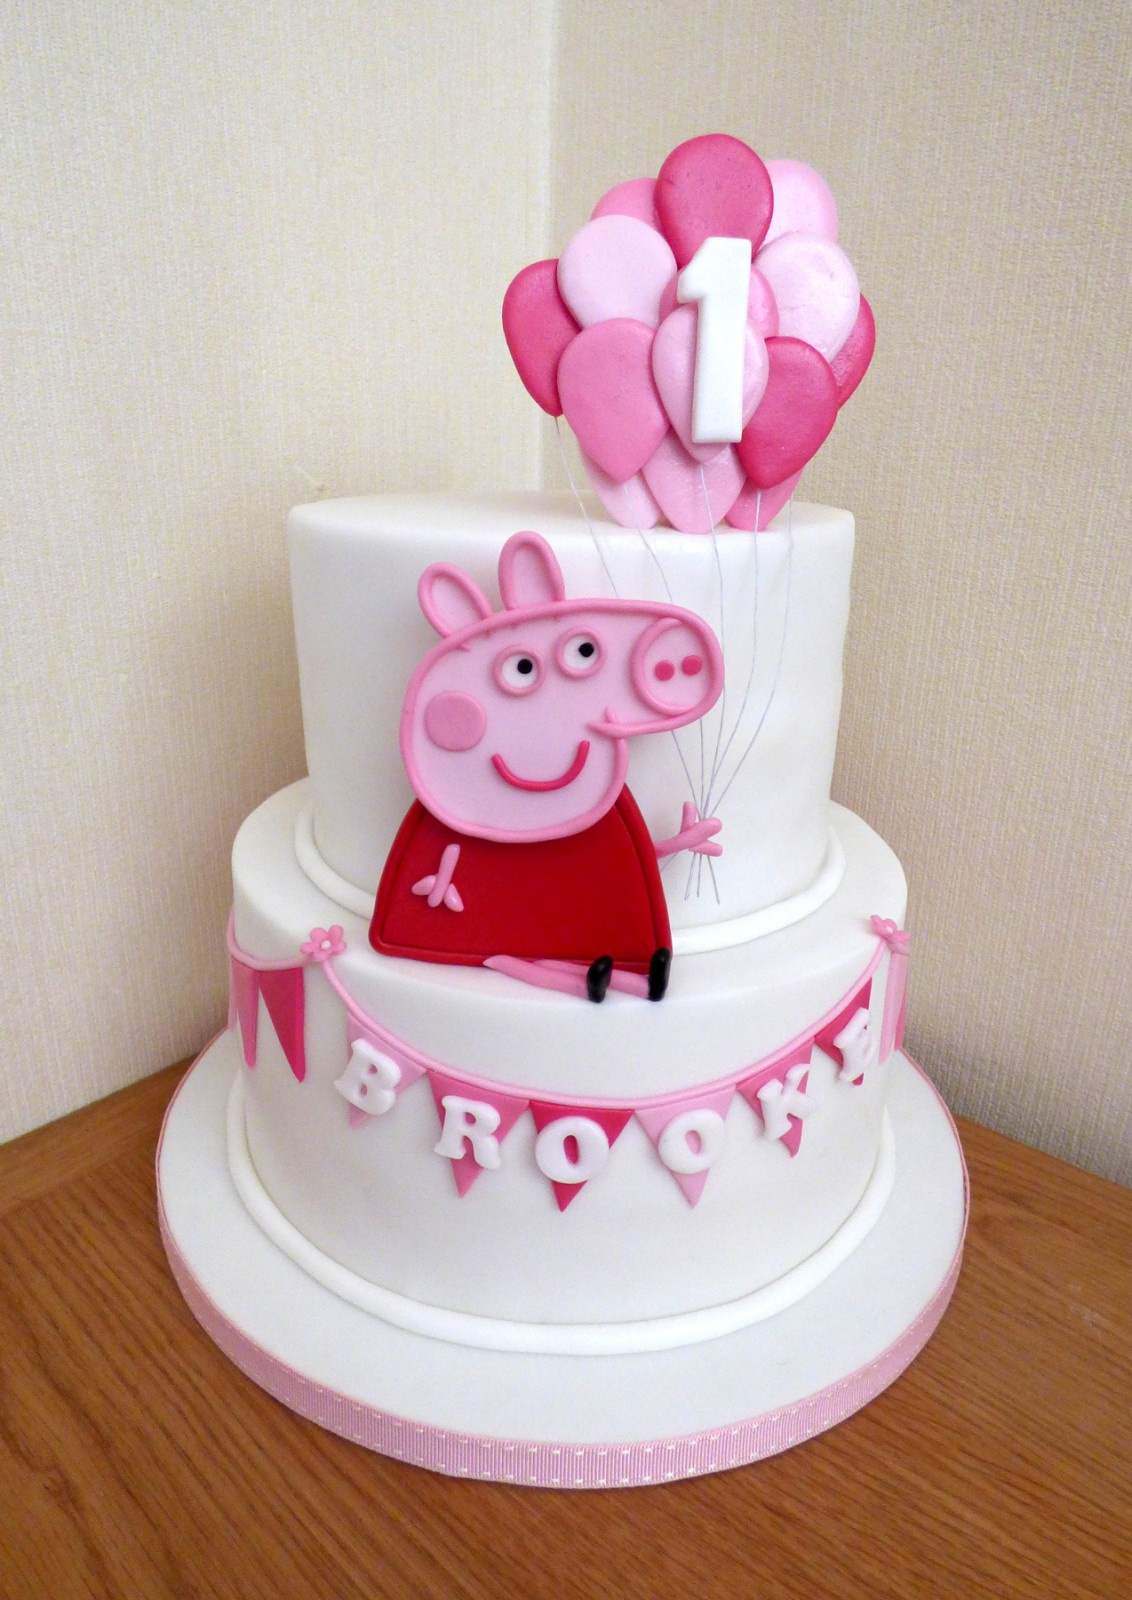 Pleasing 2 Tier Peppa Pig Inspired Birthday Cake Susies Cakes Funny Birthday Cards Online Overcheapnameinfo